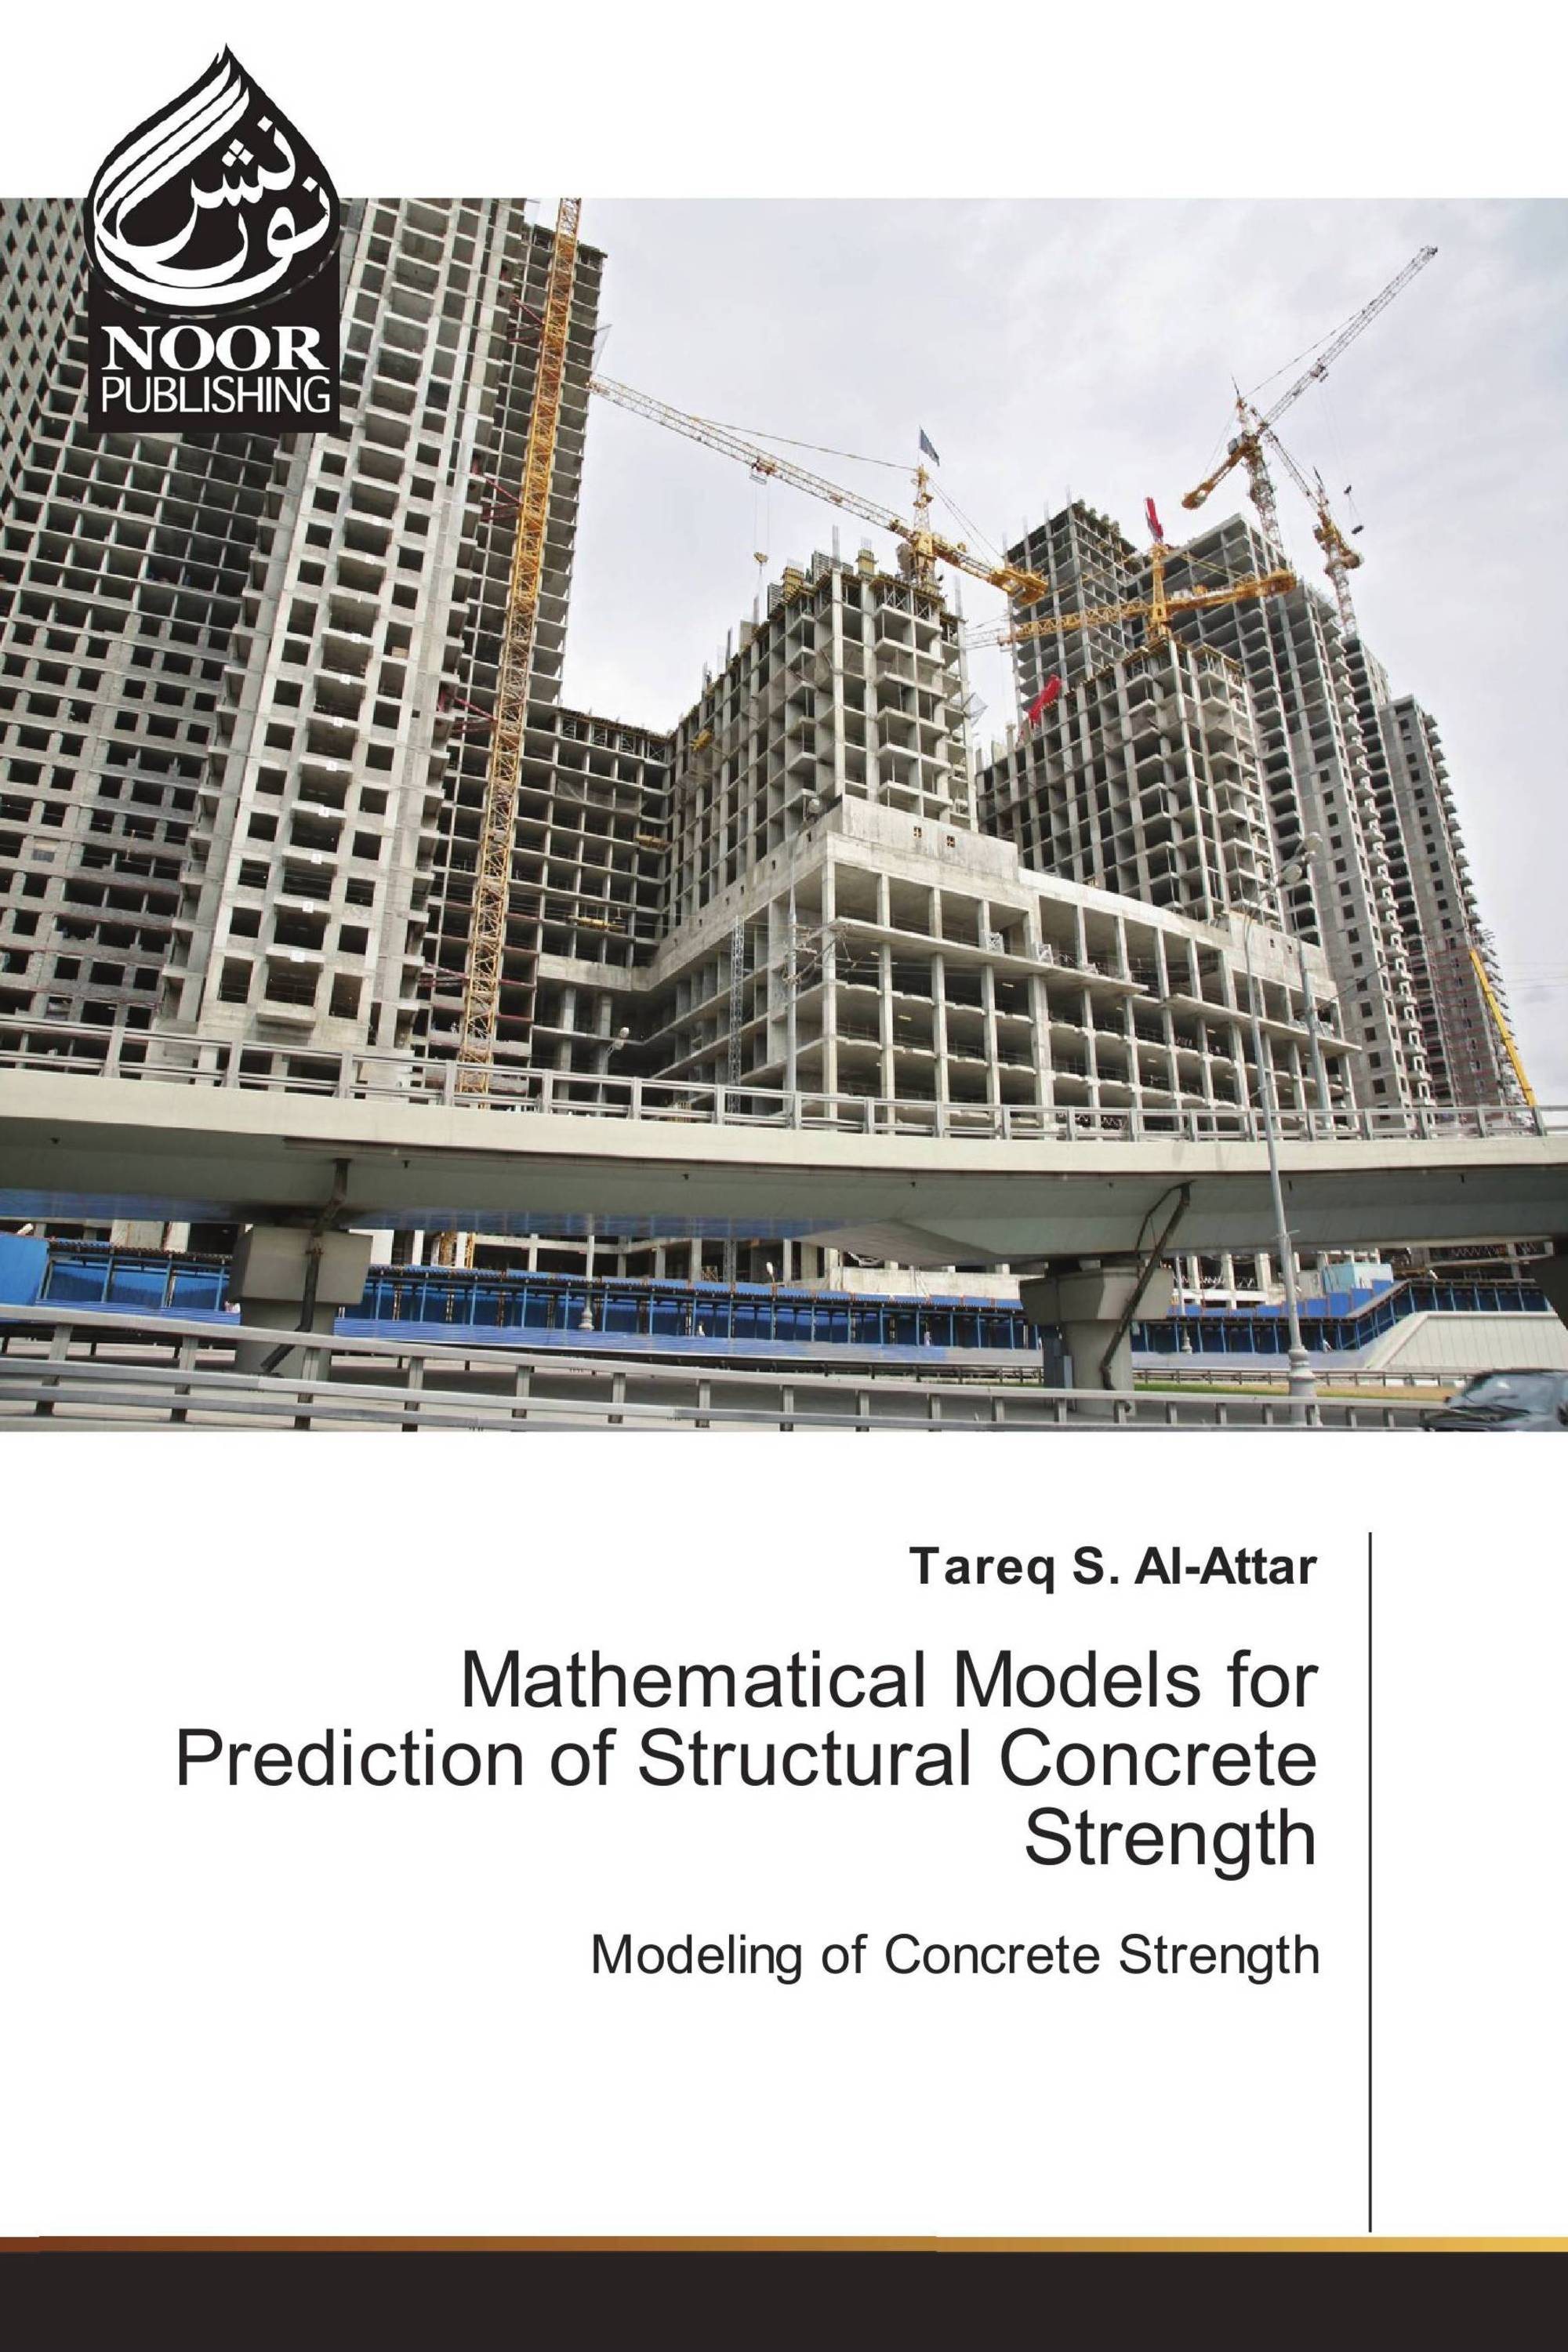 Mathematical Models for Prediction of Structural Concrete Strength